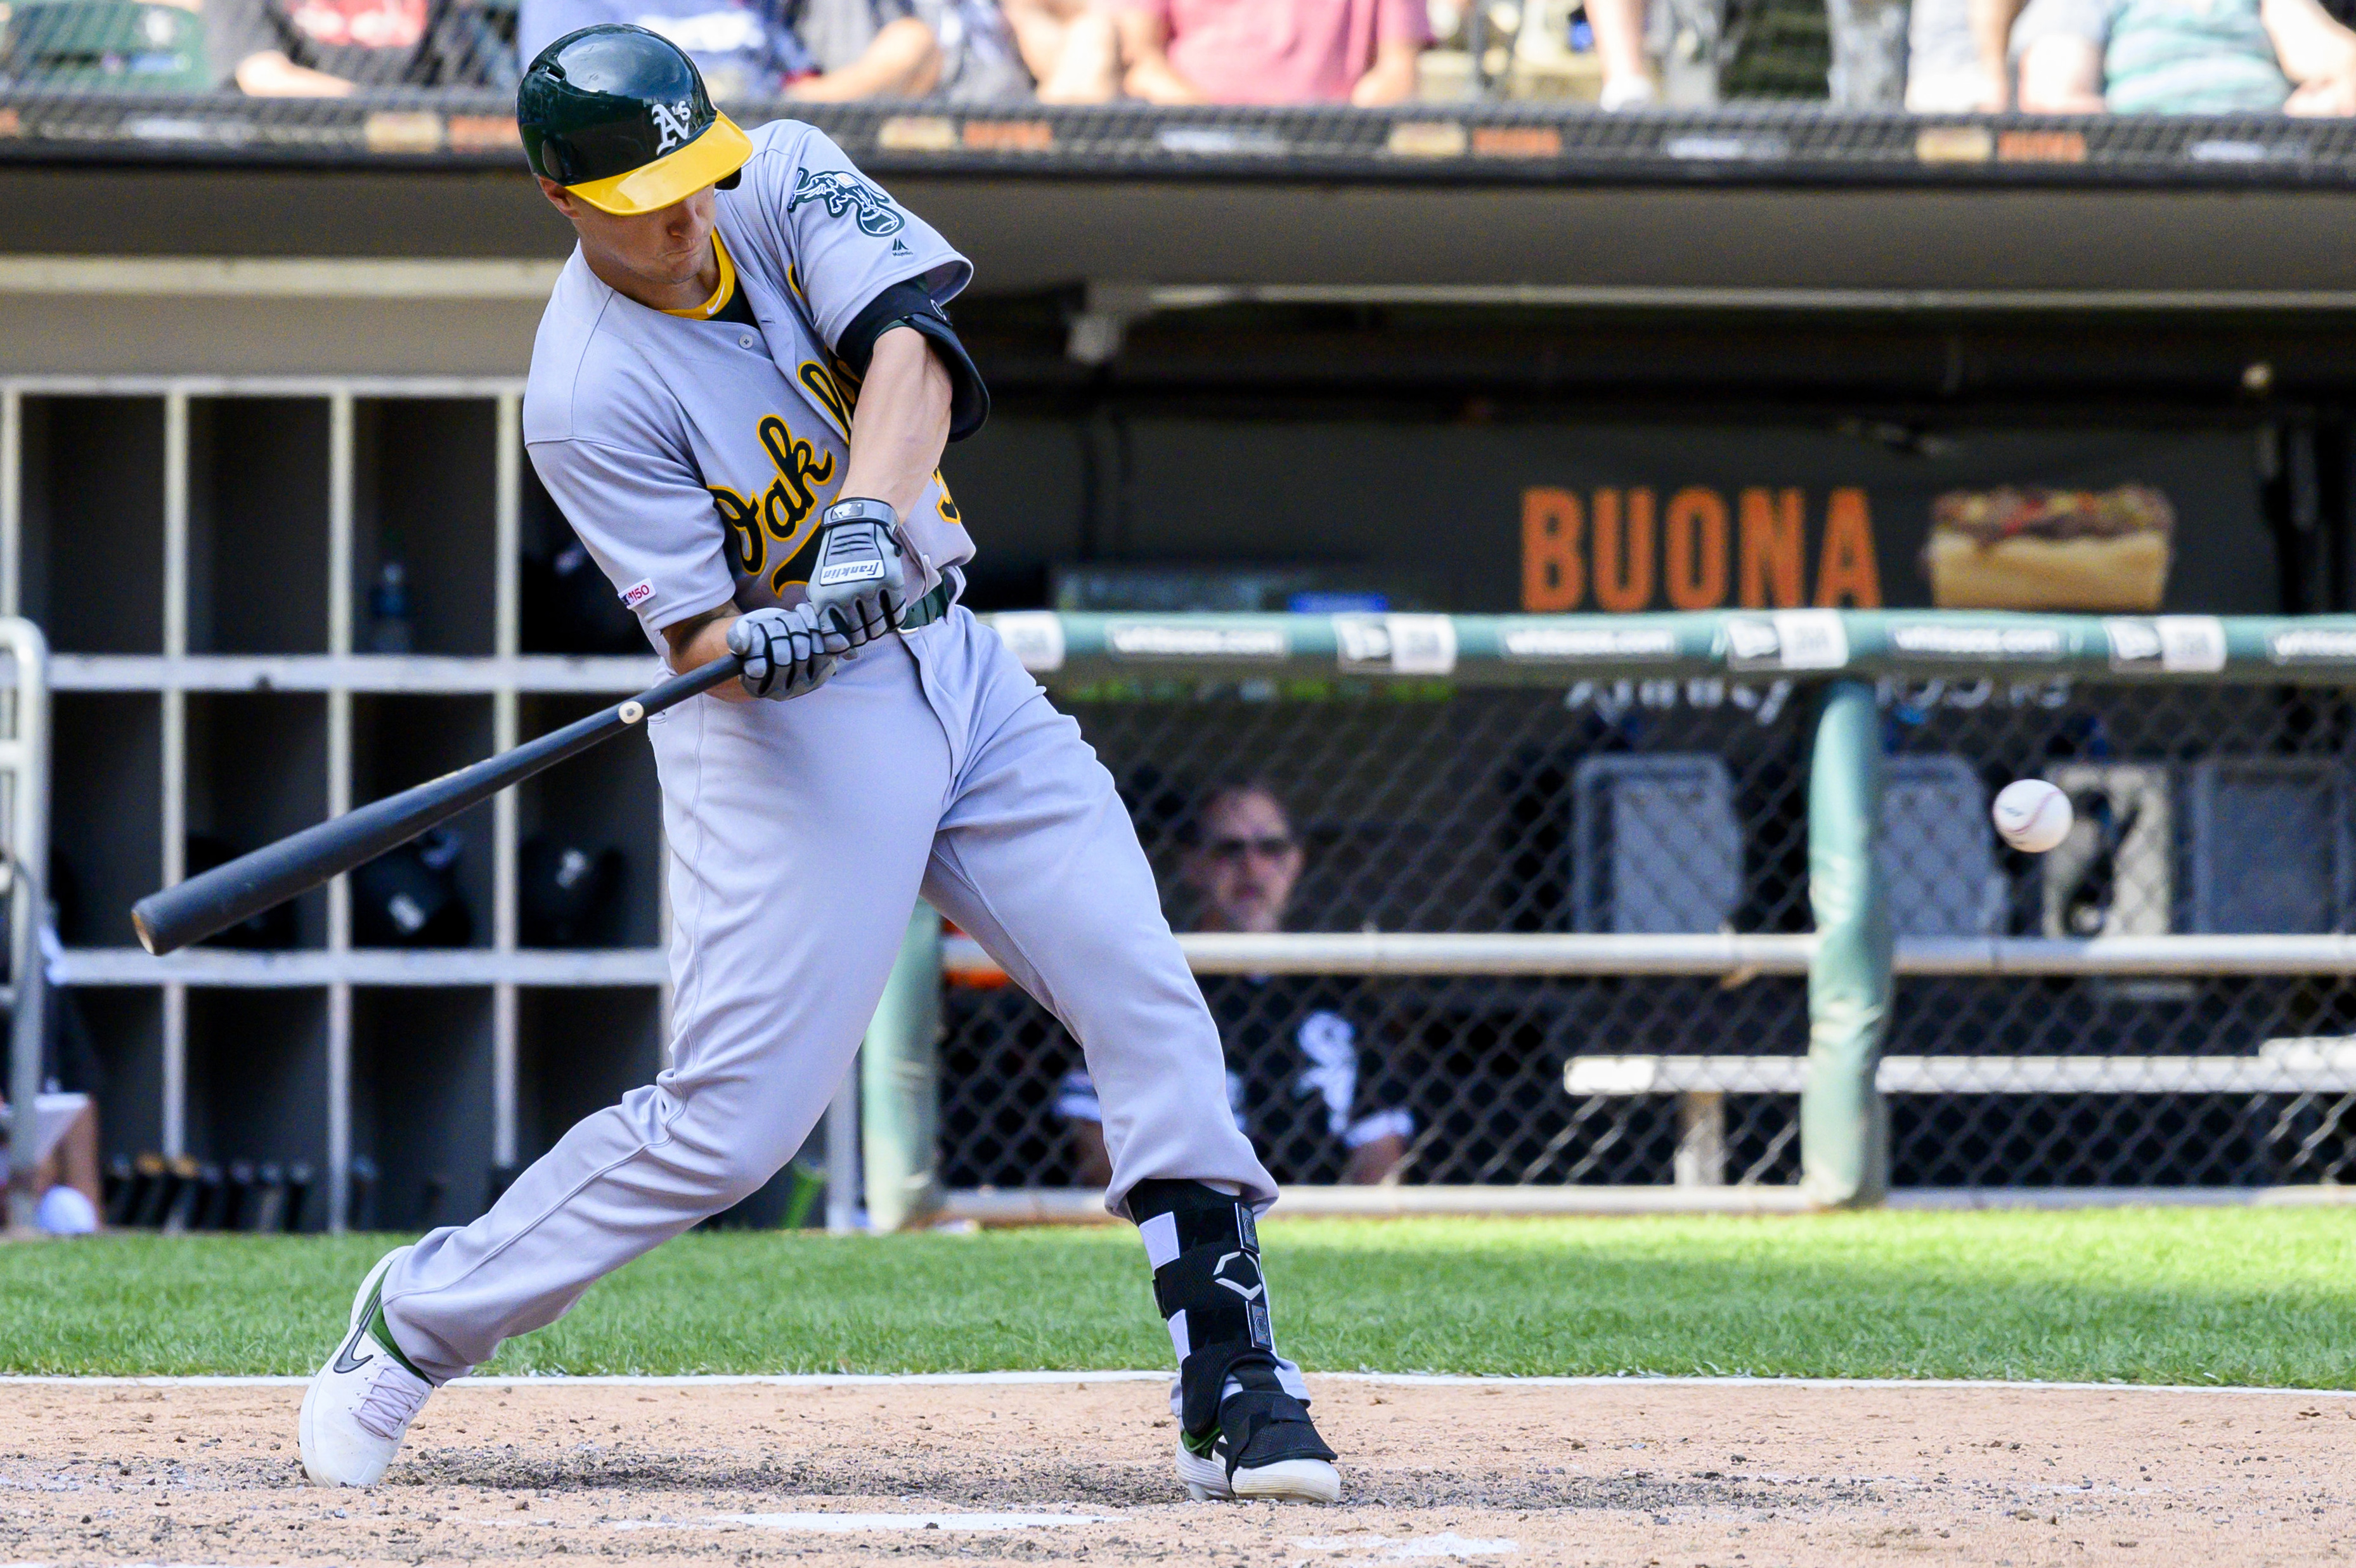 MLB: Oakland Athletics at Chicago White Sox